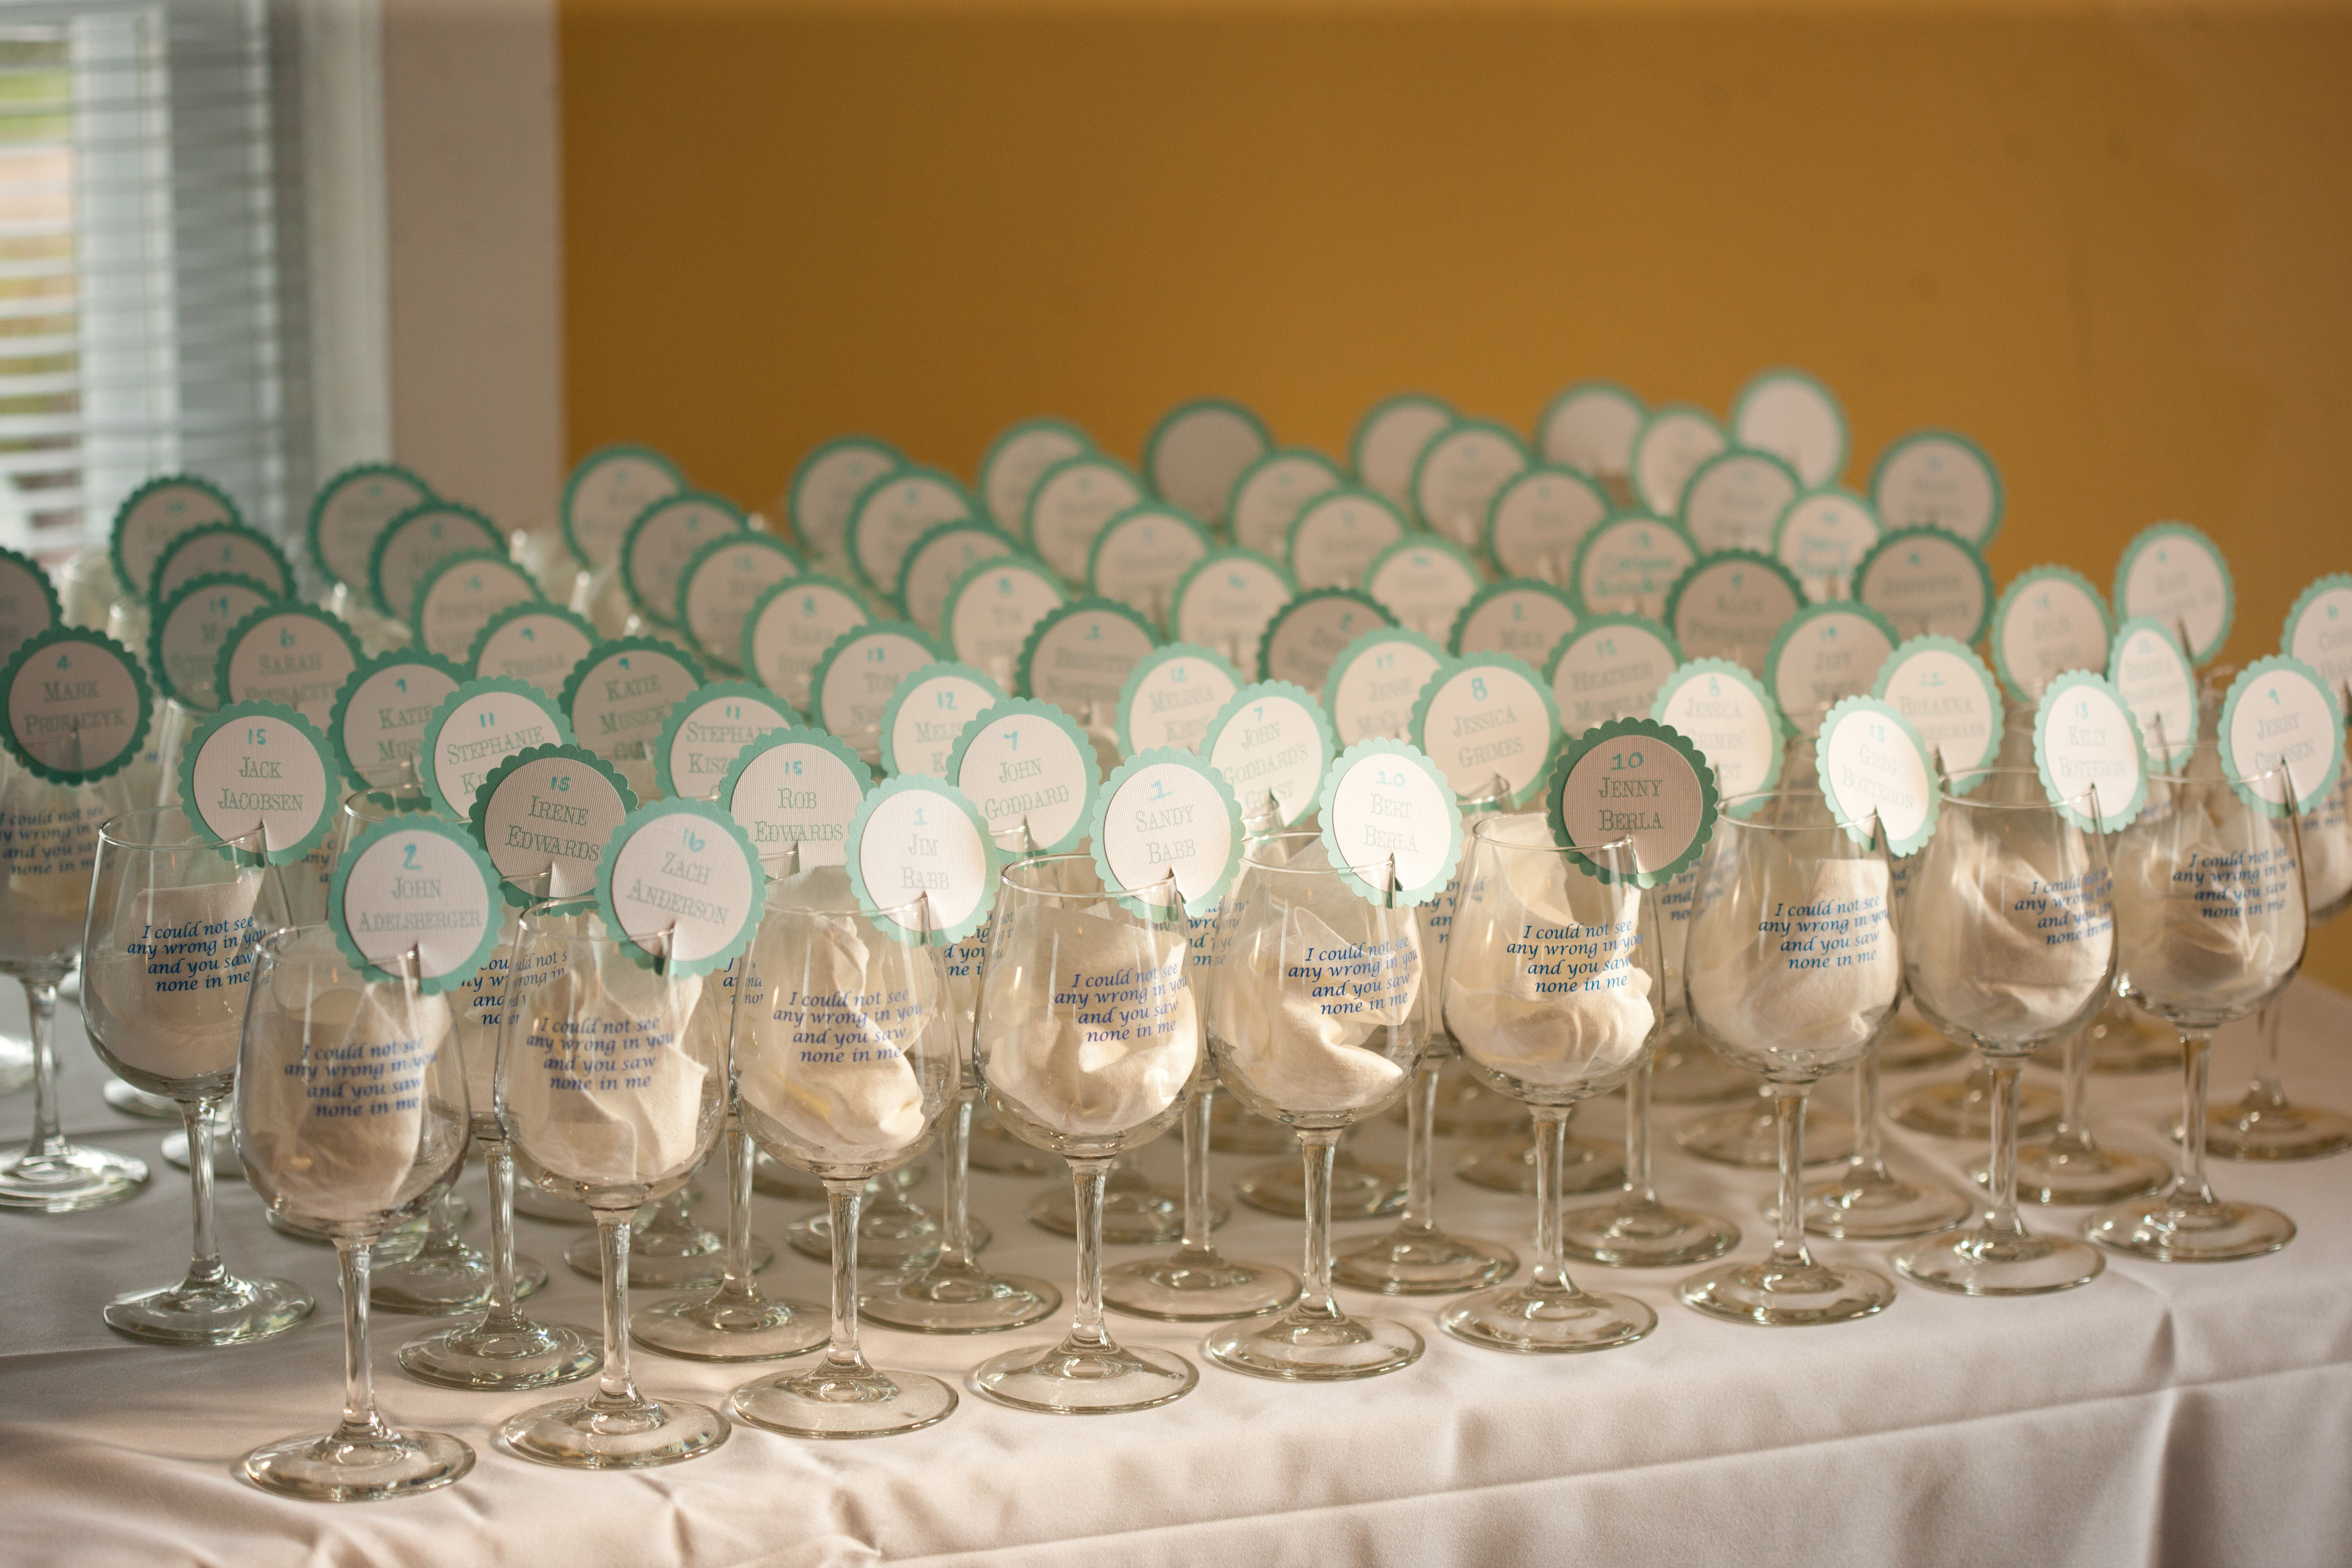 Wedding Favors Wine Glasses With Lyric Printed On Them And Place Card Sitting Rim